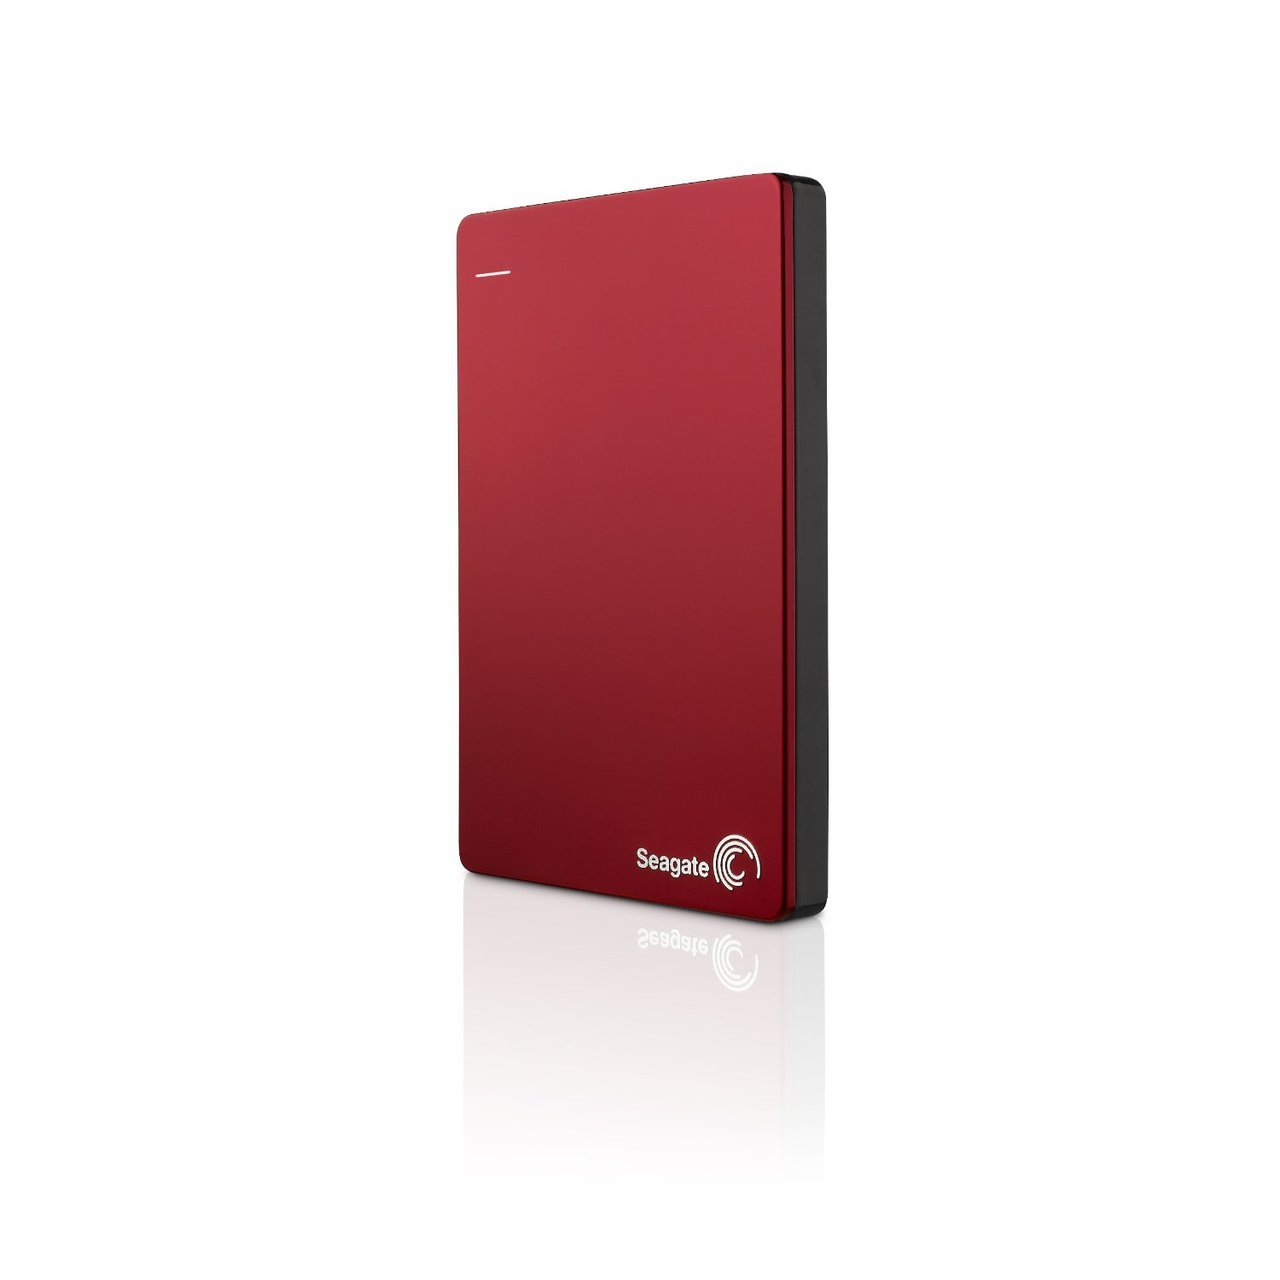 Seagate Backup Plus Slim 2TB Portable External Hard Drive with Mobile Device Backup USB 3.0 (Red)